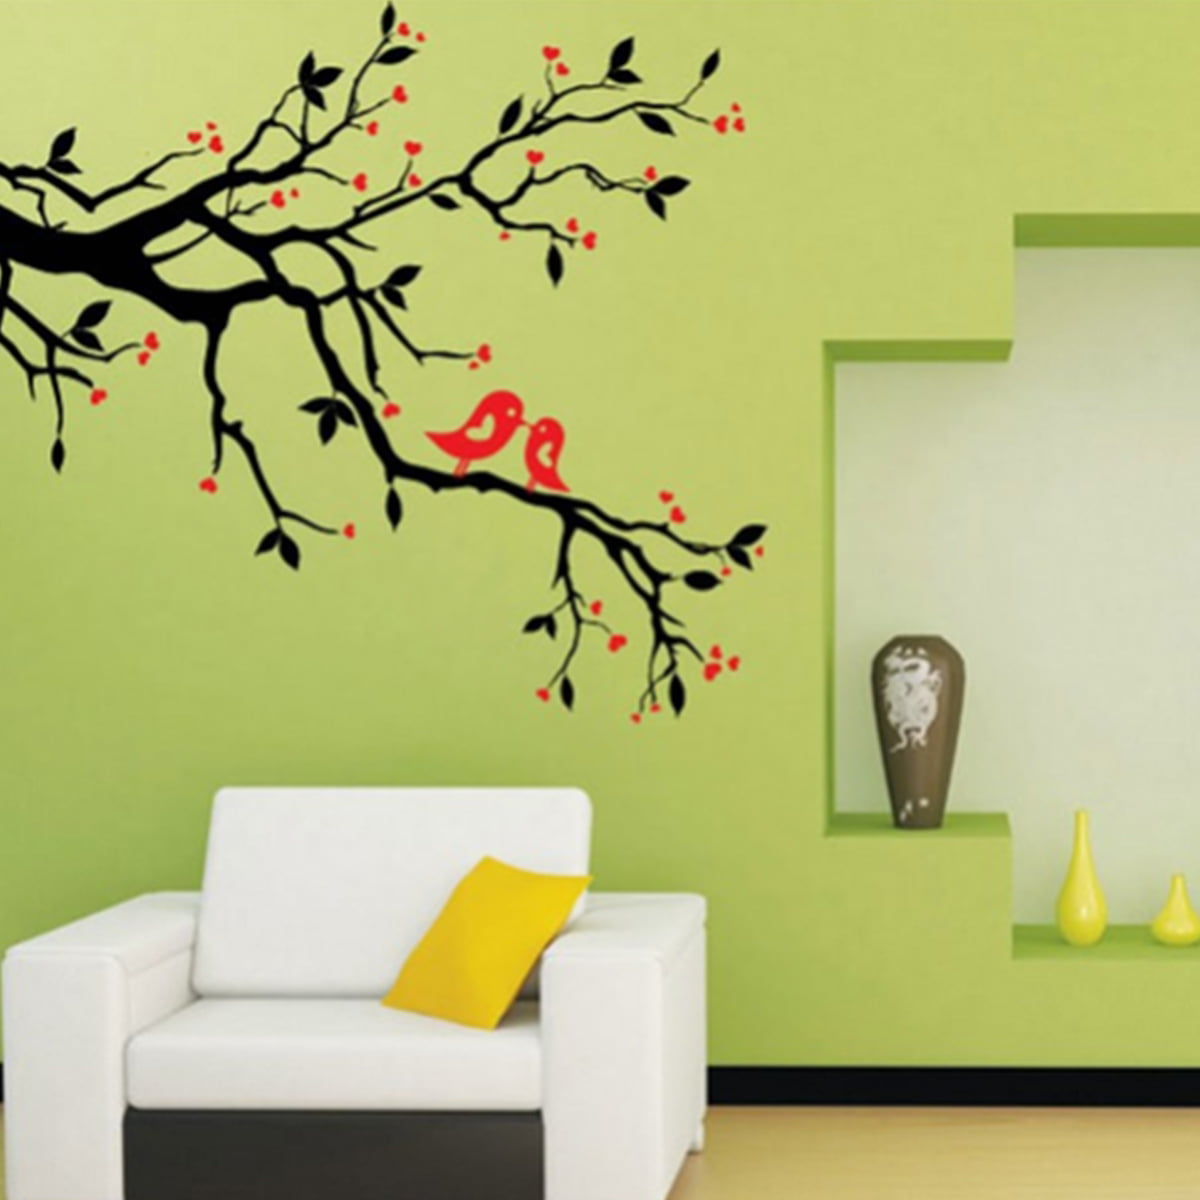 50x70cm Wall Sticker Love Heart Tree Bird Removable Vinyl Wall Decal